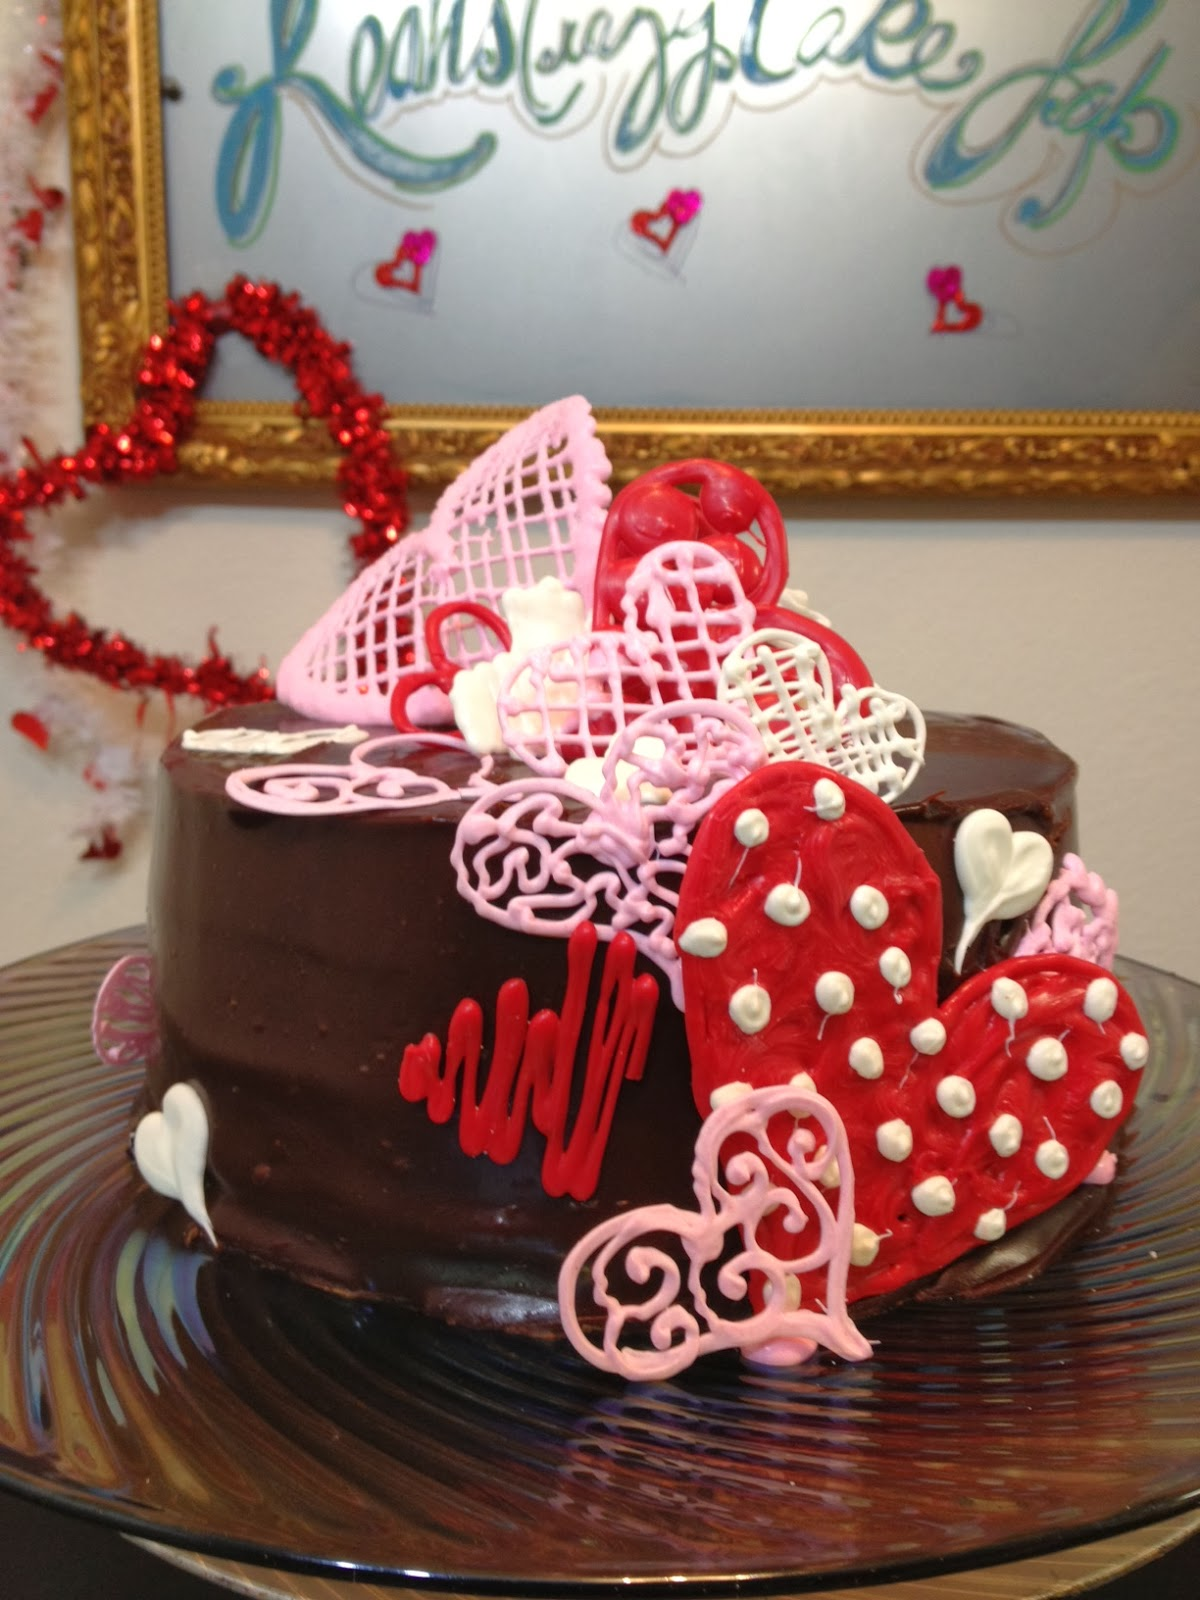 Leahs Crazy Cake Lab Sweet Hearts Chocolate Cake In Ganache And